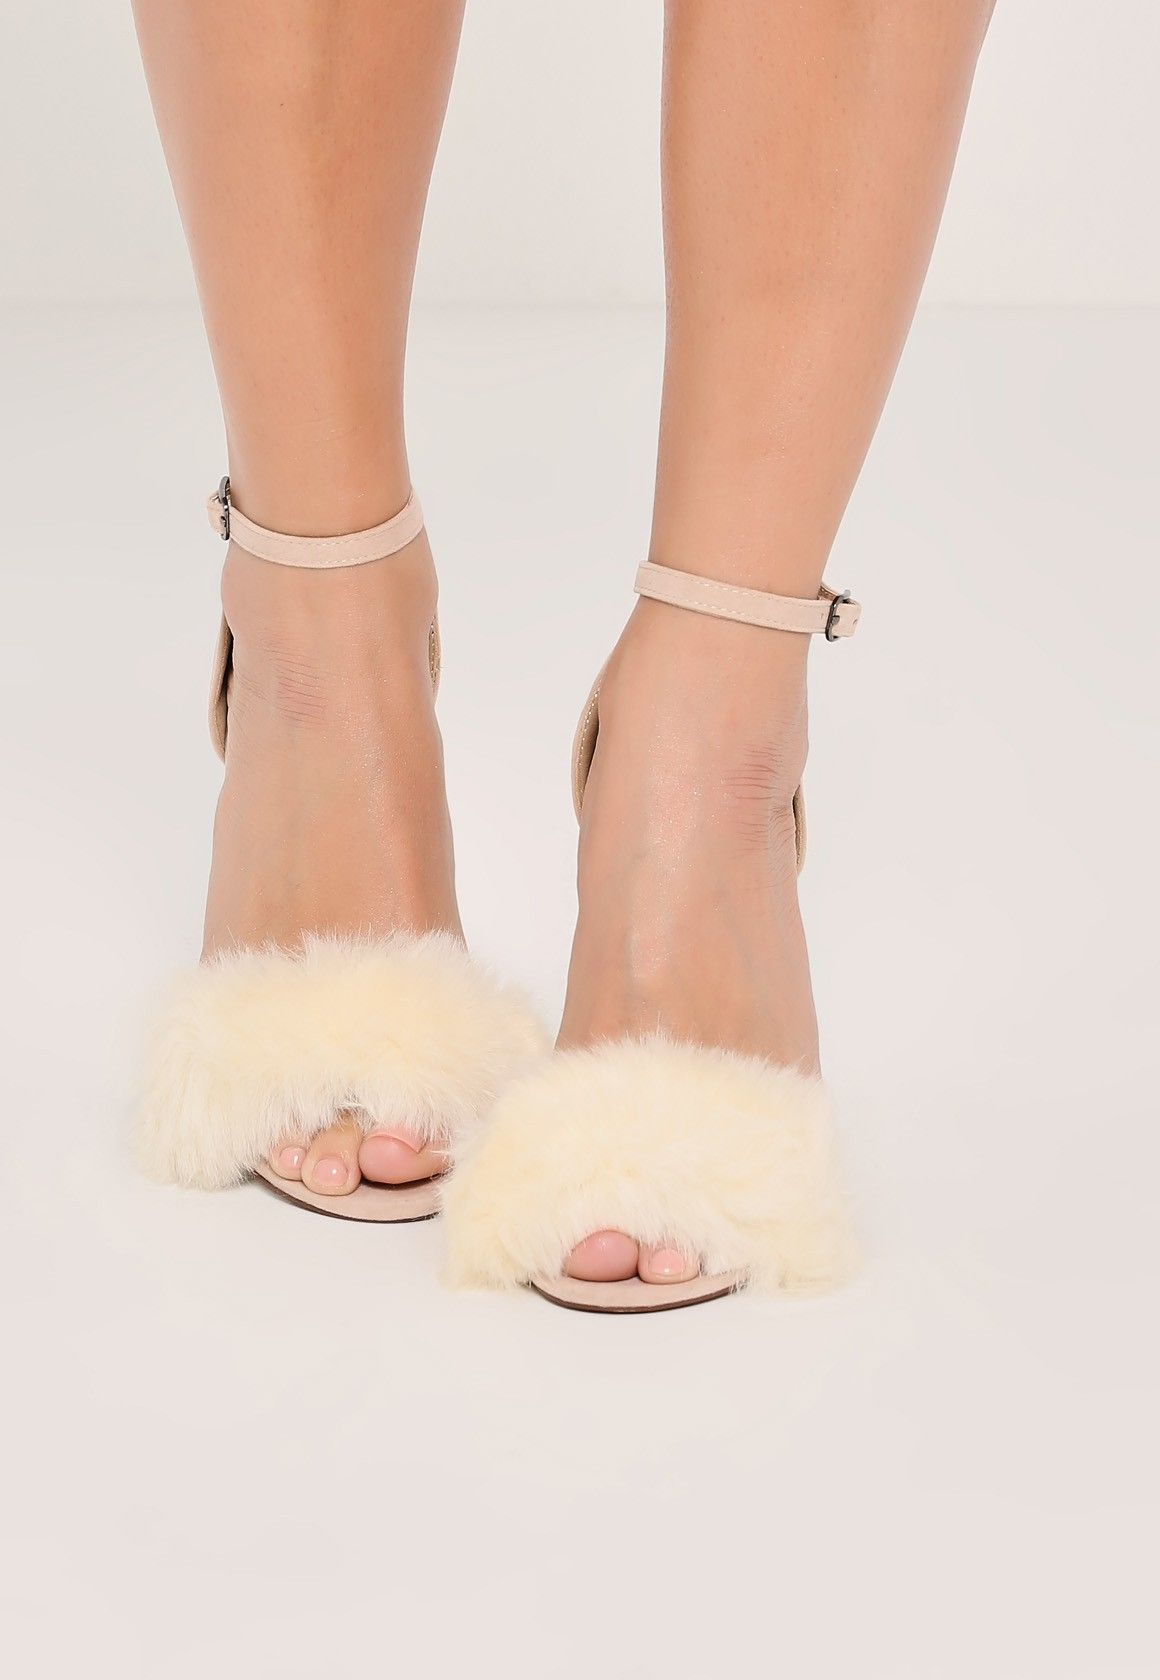 Fluffy heels give us the ultimate luxe feelin' and these nude vamp strap barely there heels are top of our wish list.